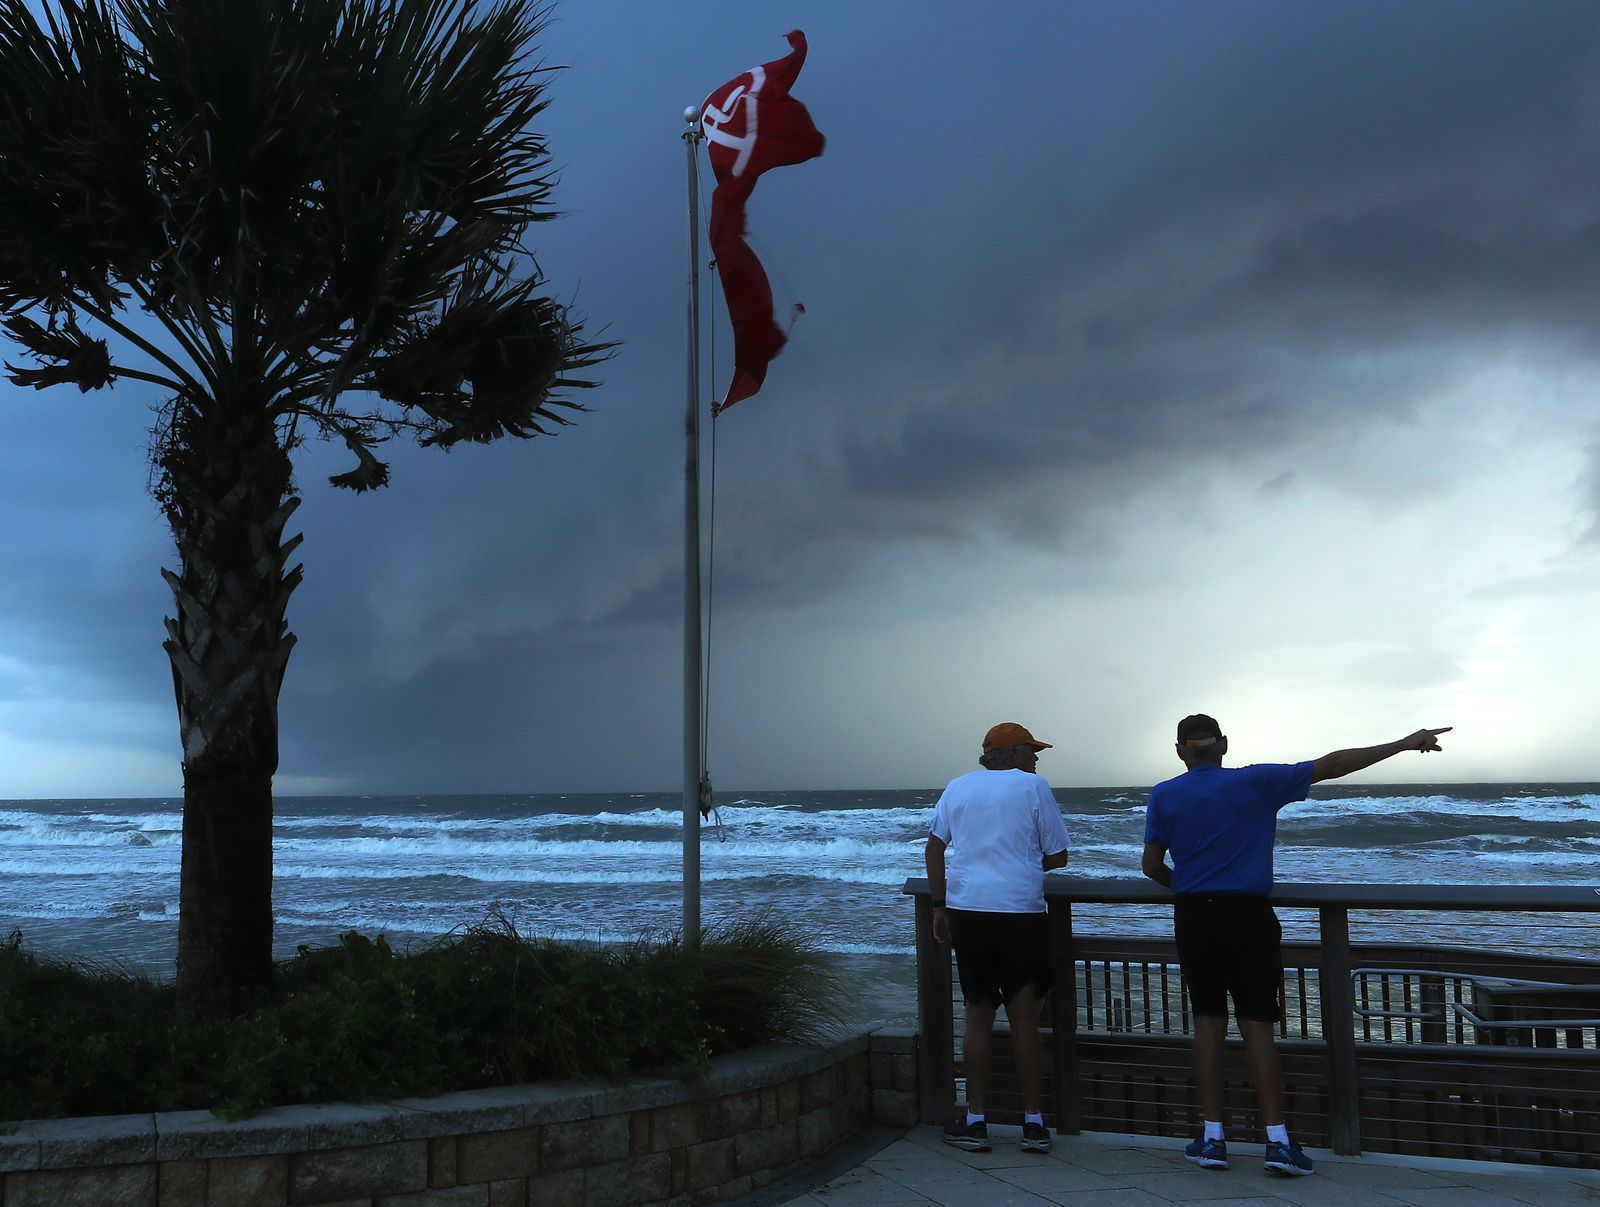 US-FLORIDA-PREPARES-FOR-THE-ARRIVAL-OF-HURRICANE-DORIAN